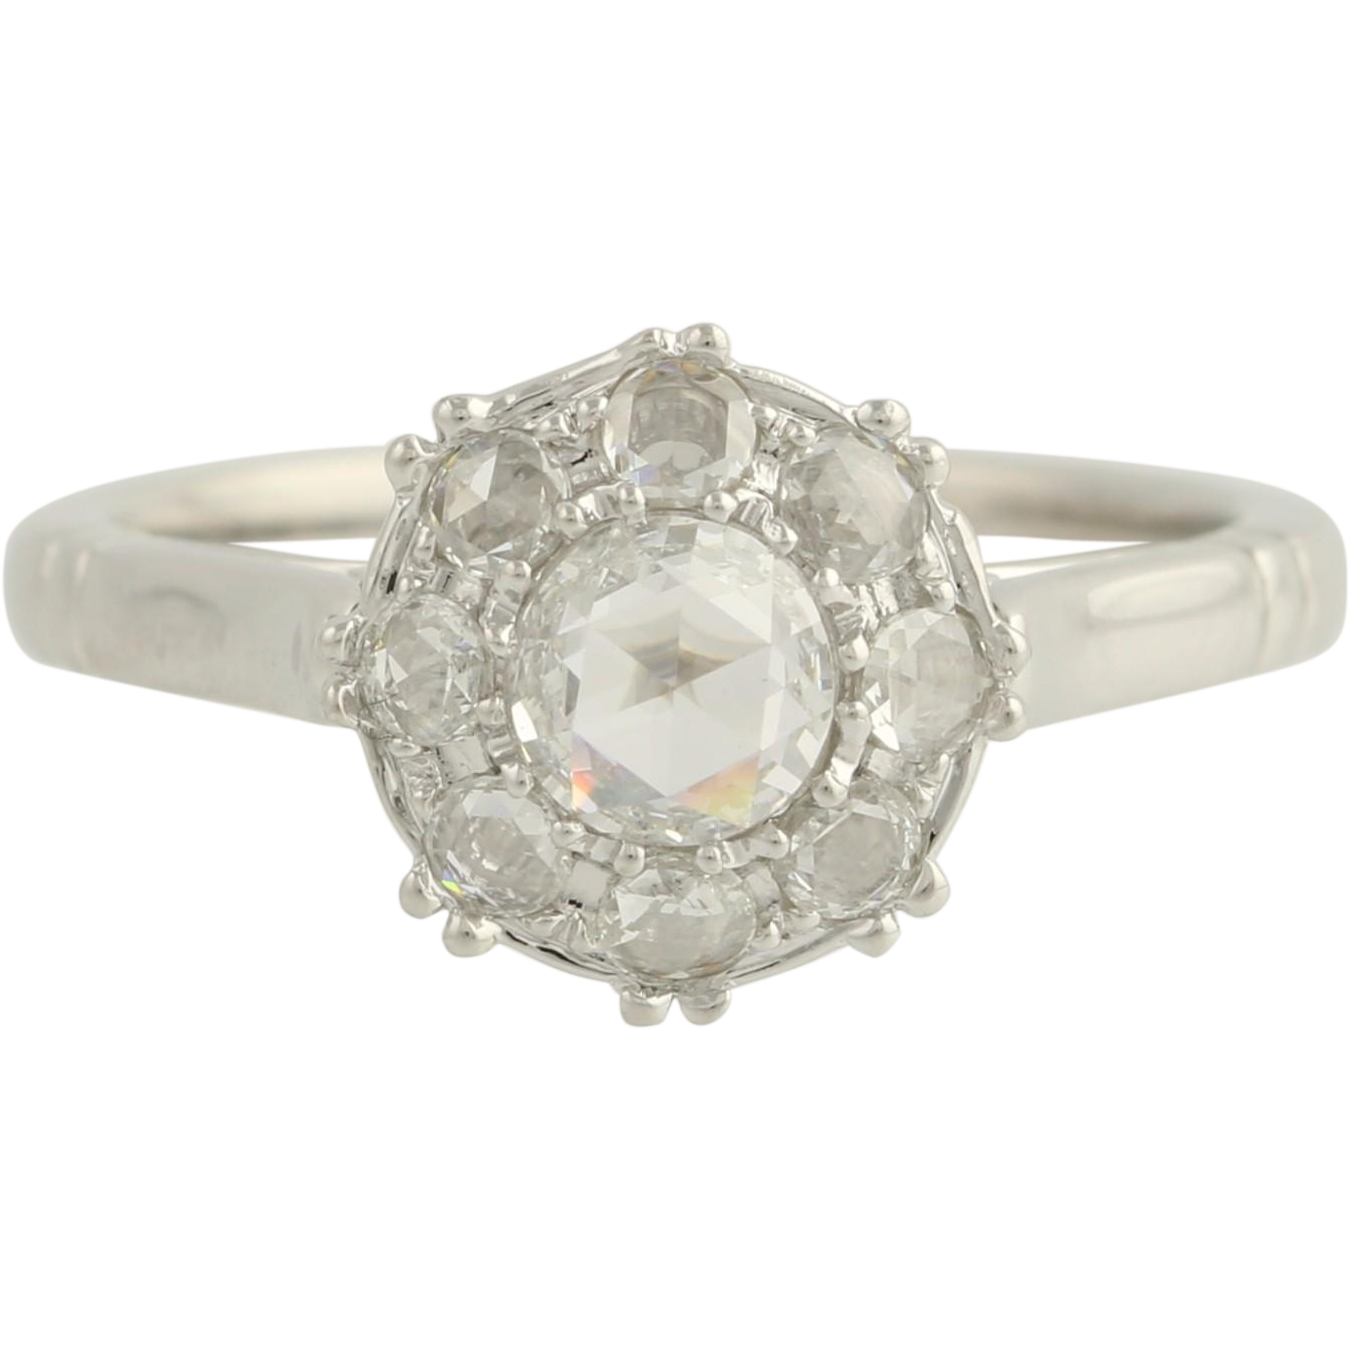 Rose Cut Diamond Engagement Ring - 18k White Gold Size 6 1/2 Genuine .63ctw Unique Engagement Ring